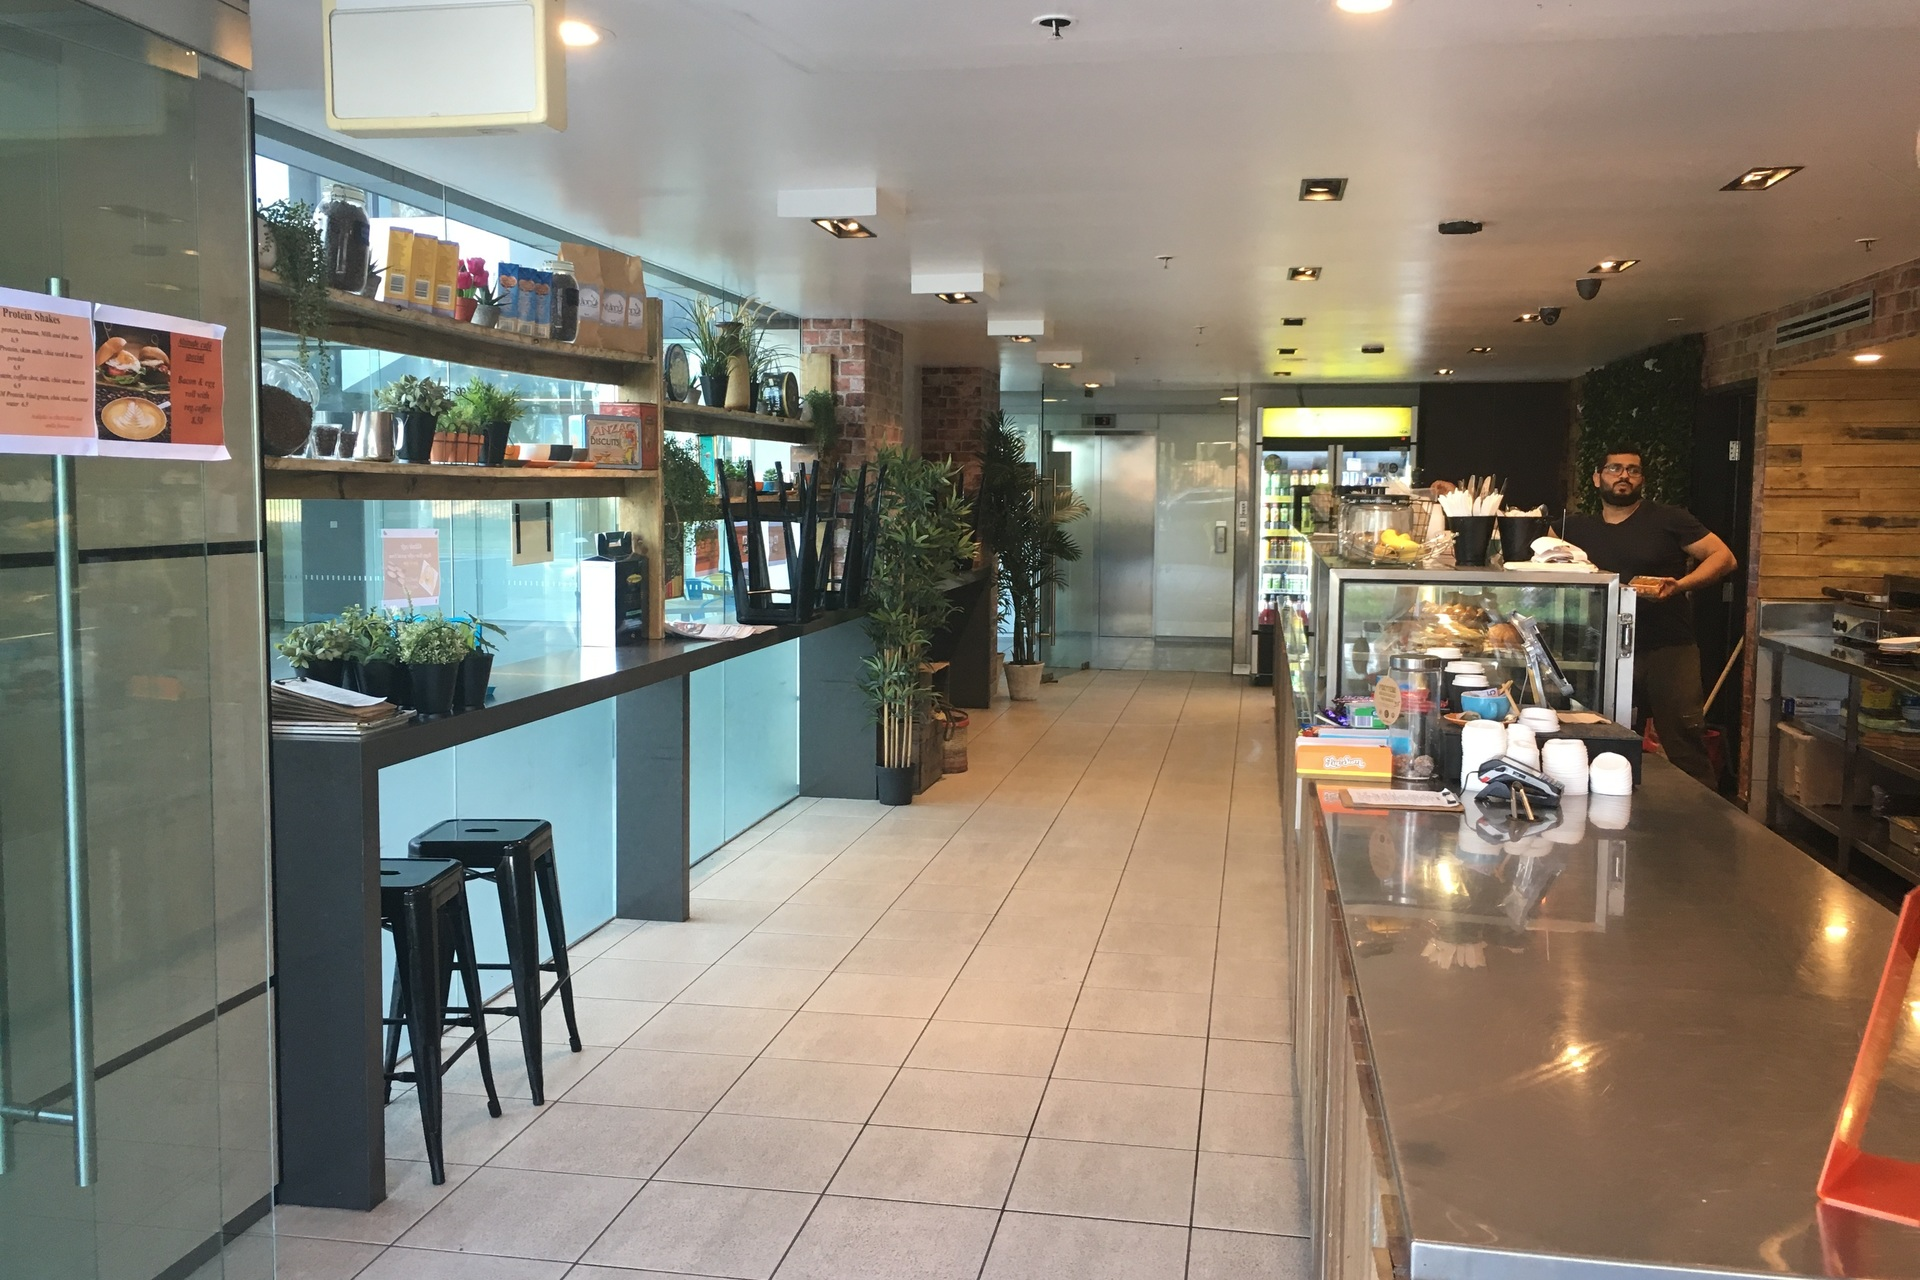 Lobby Style Cafe for Sale Sydney